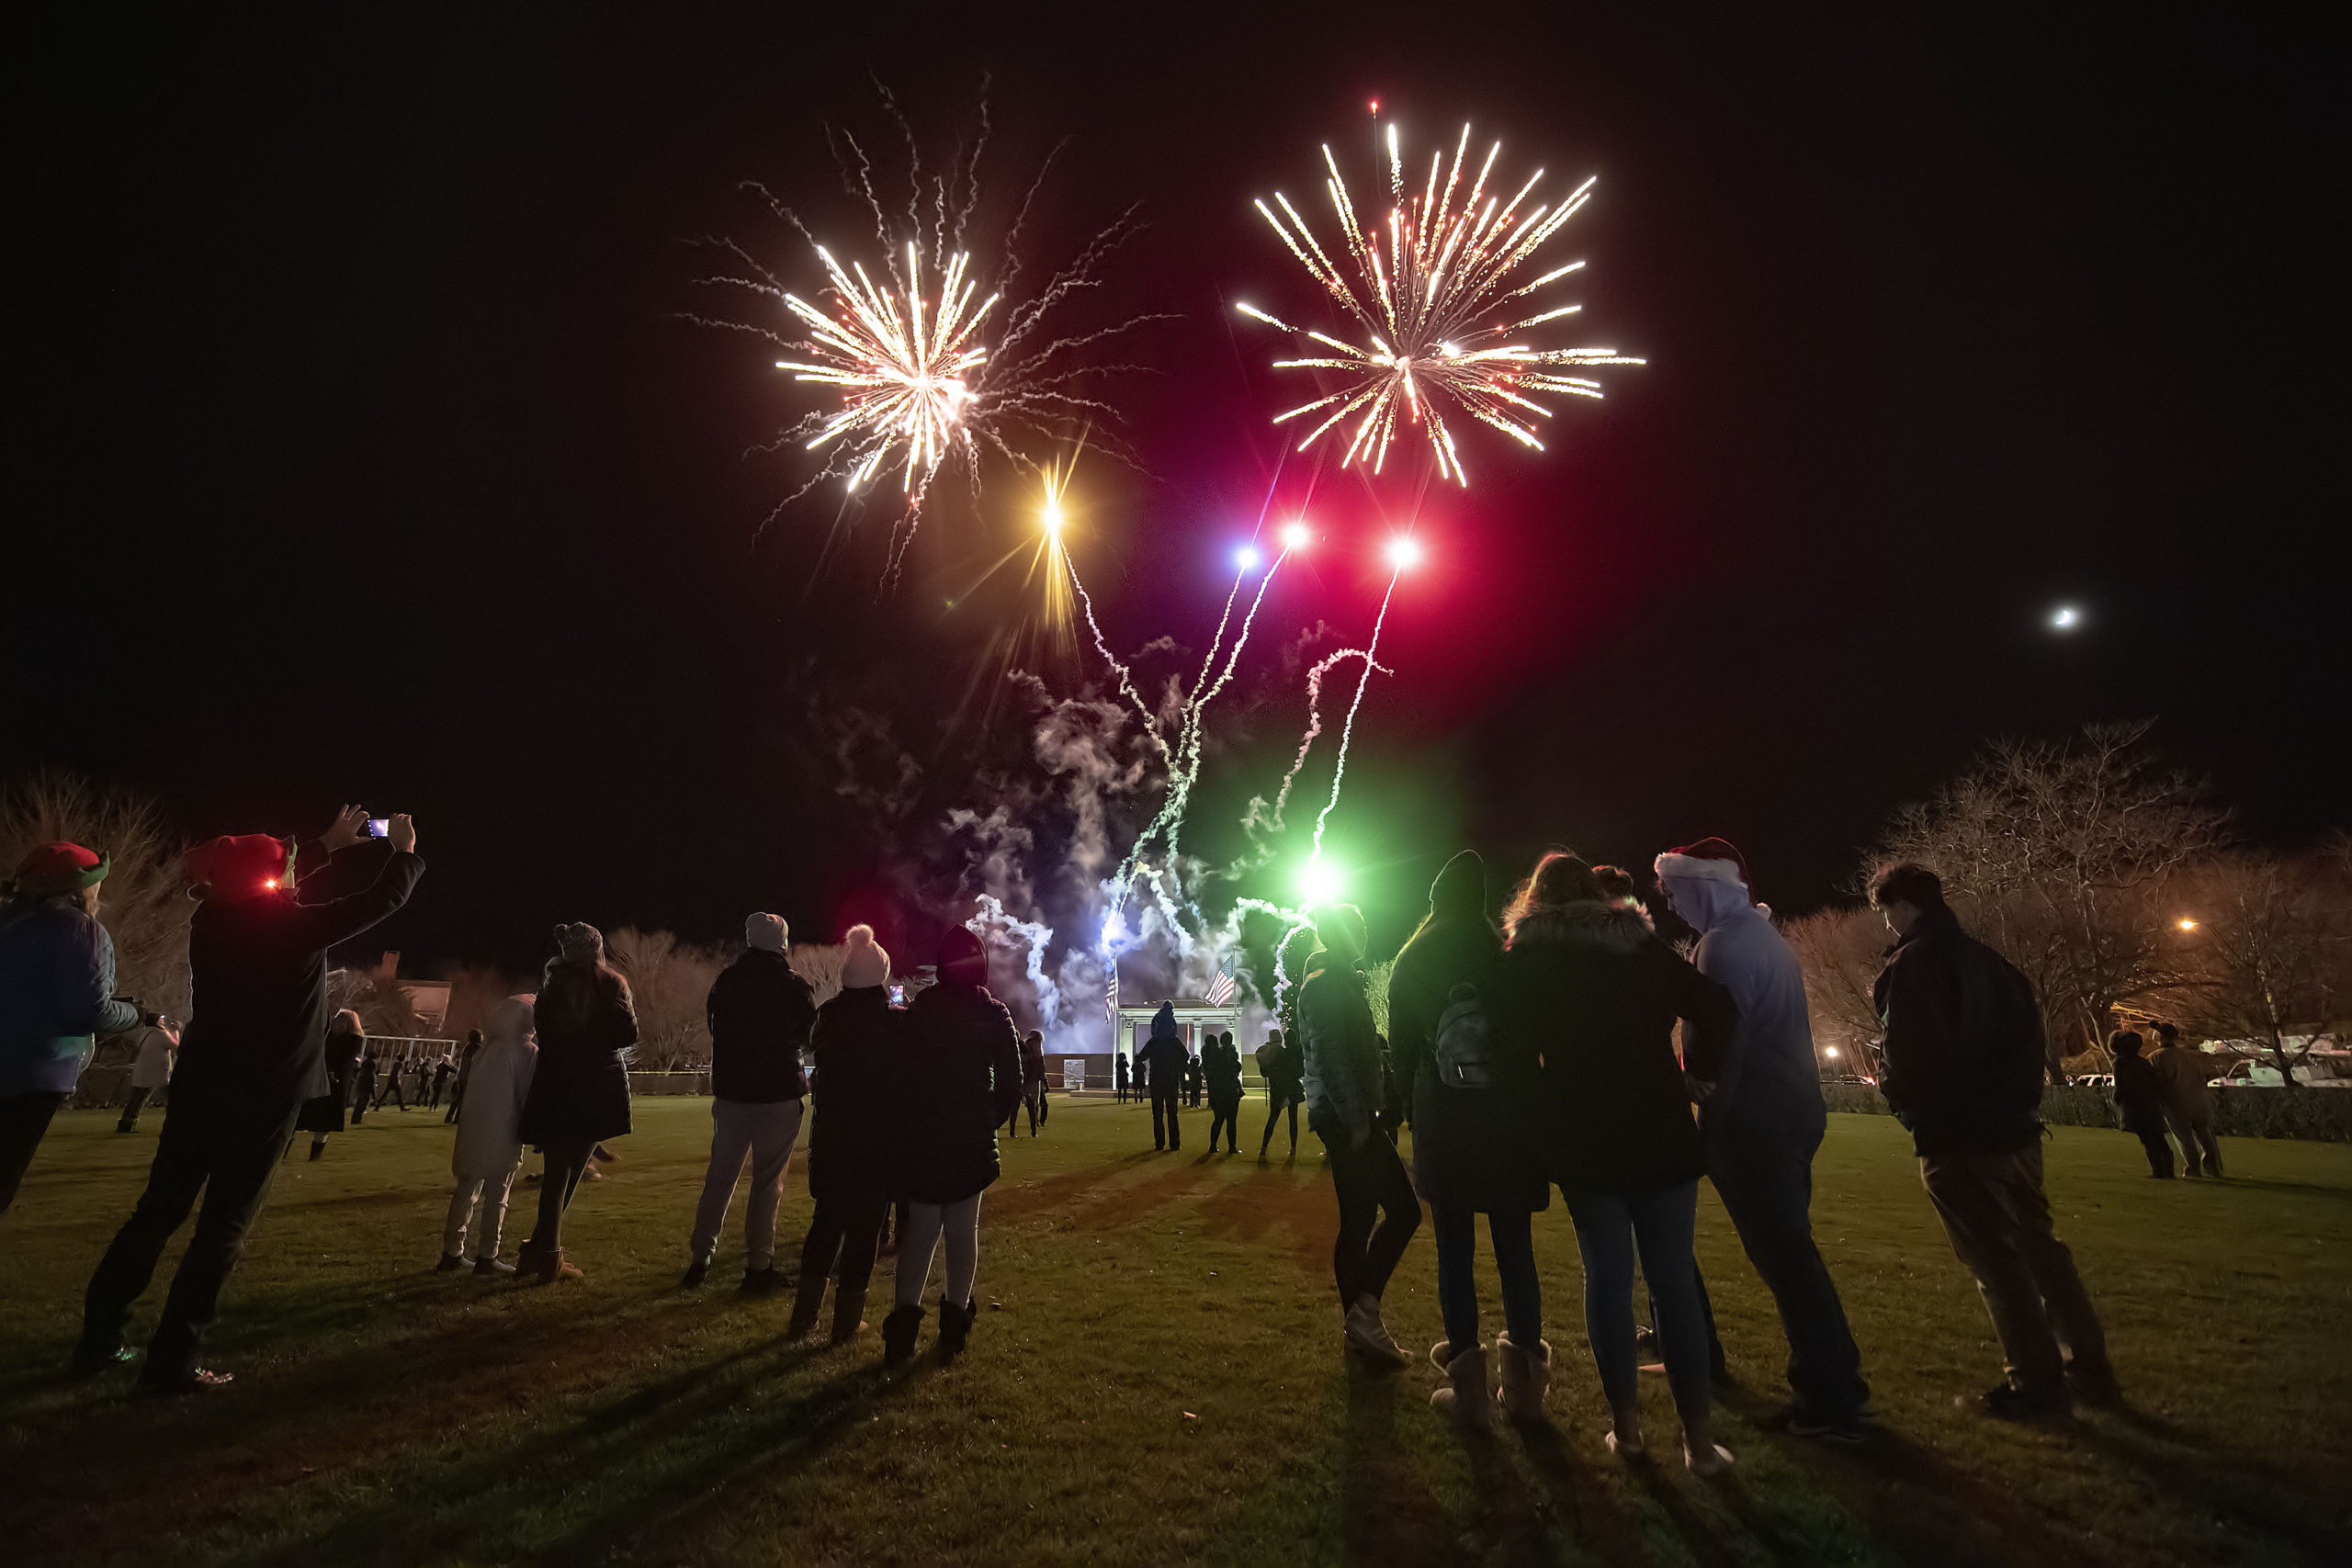 Fireworks in Agawam Park following the 2019